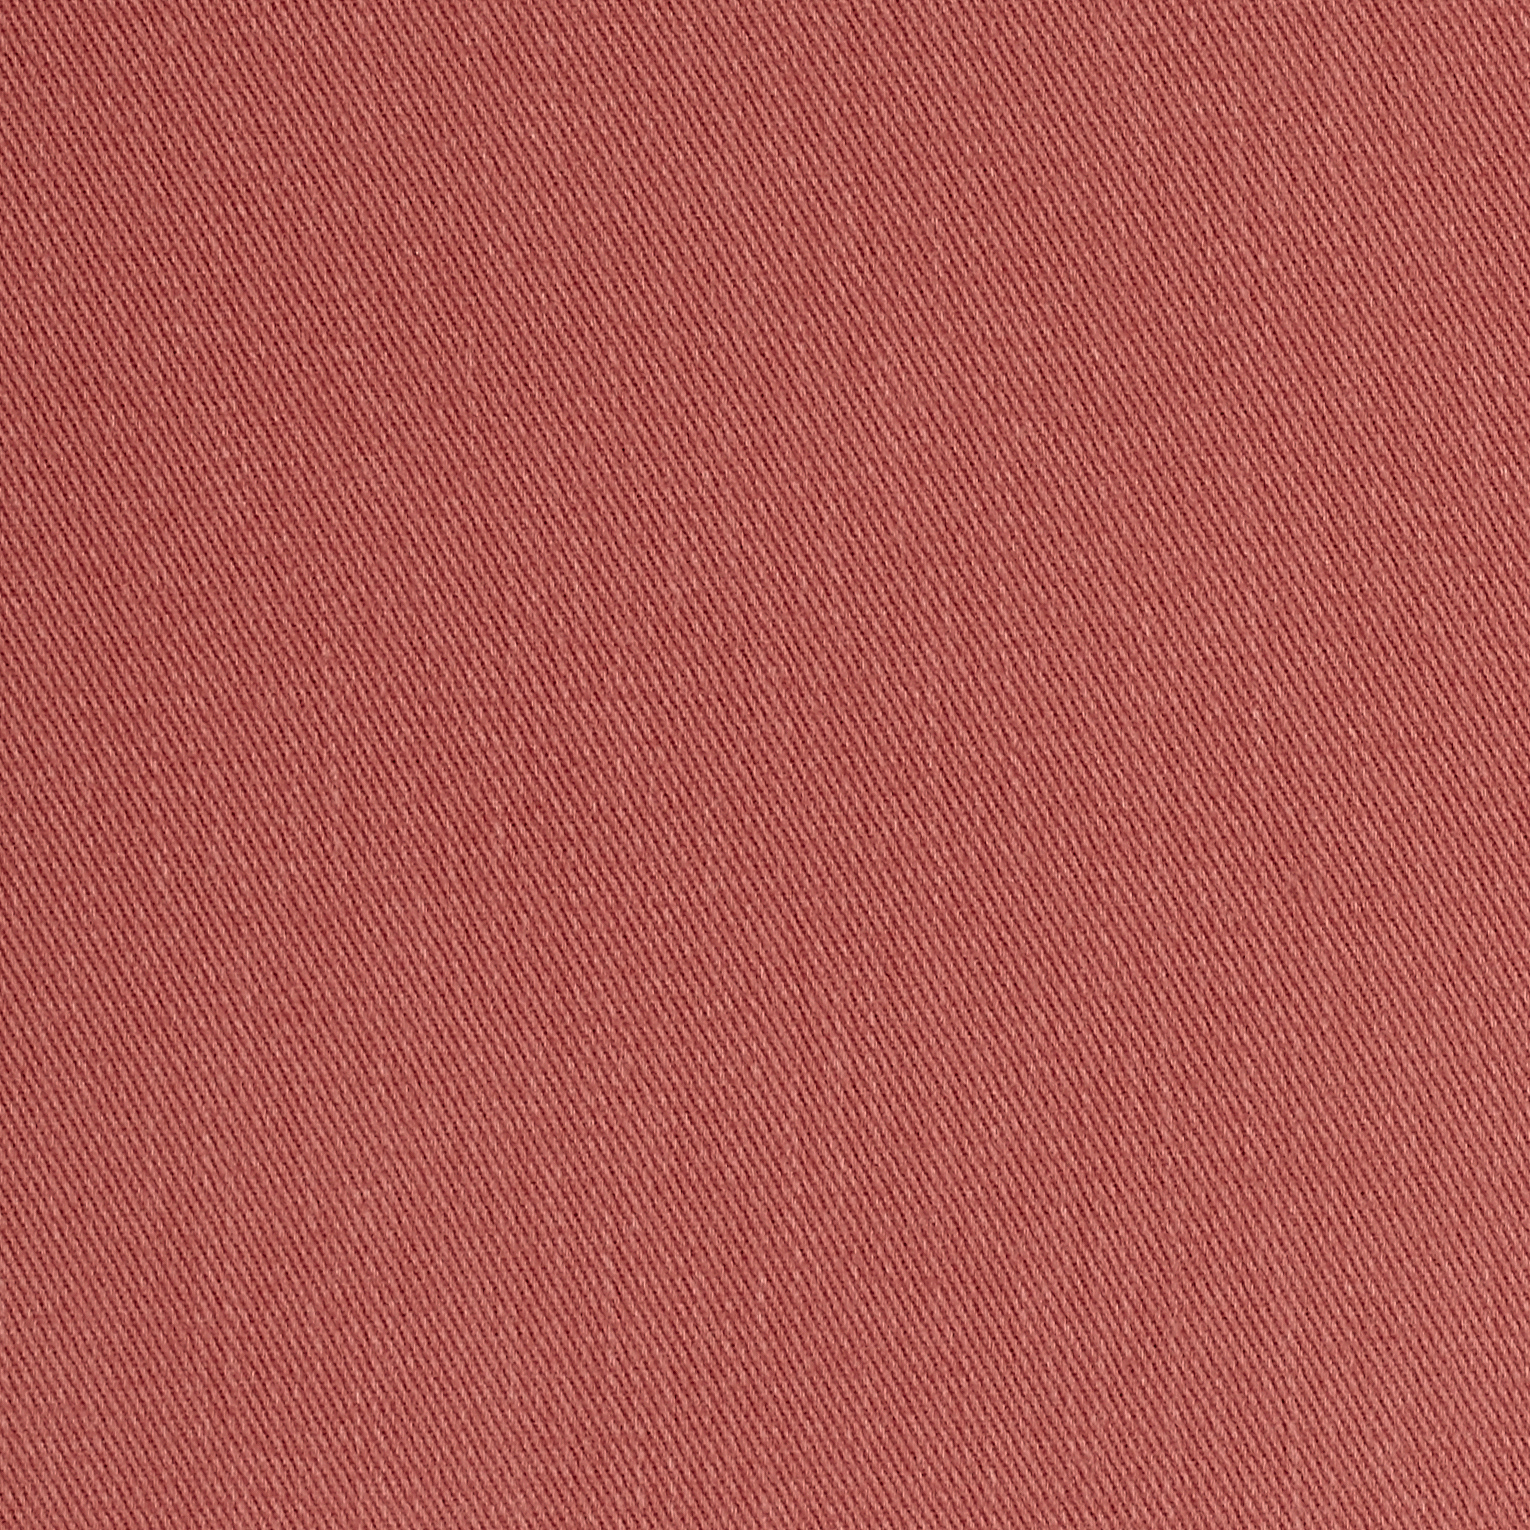 Sanded/Brushed Twill Clay Fabric by Carr in USA